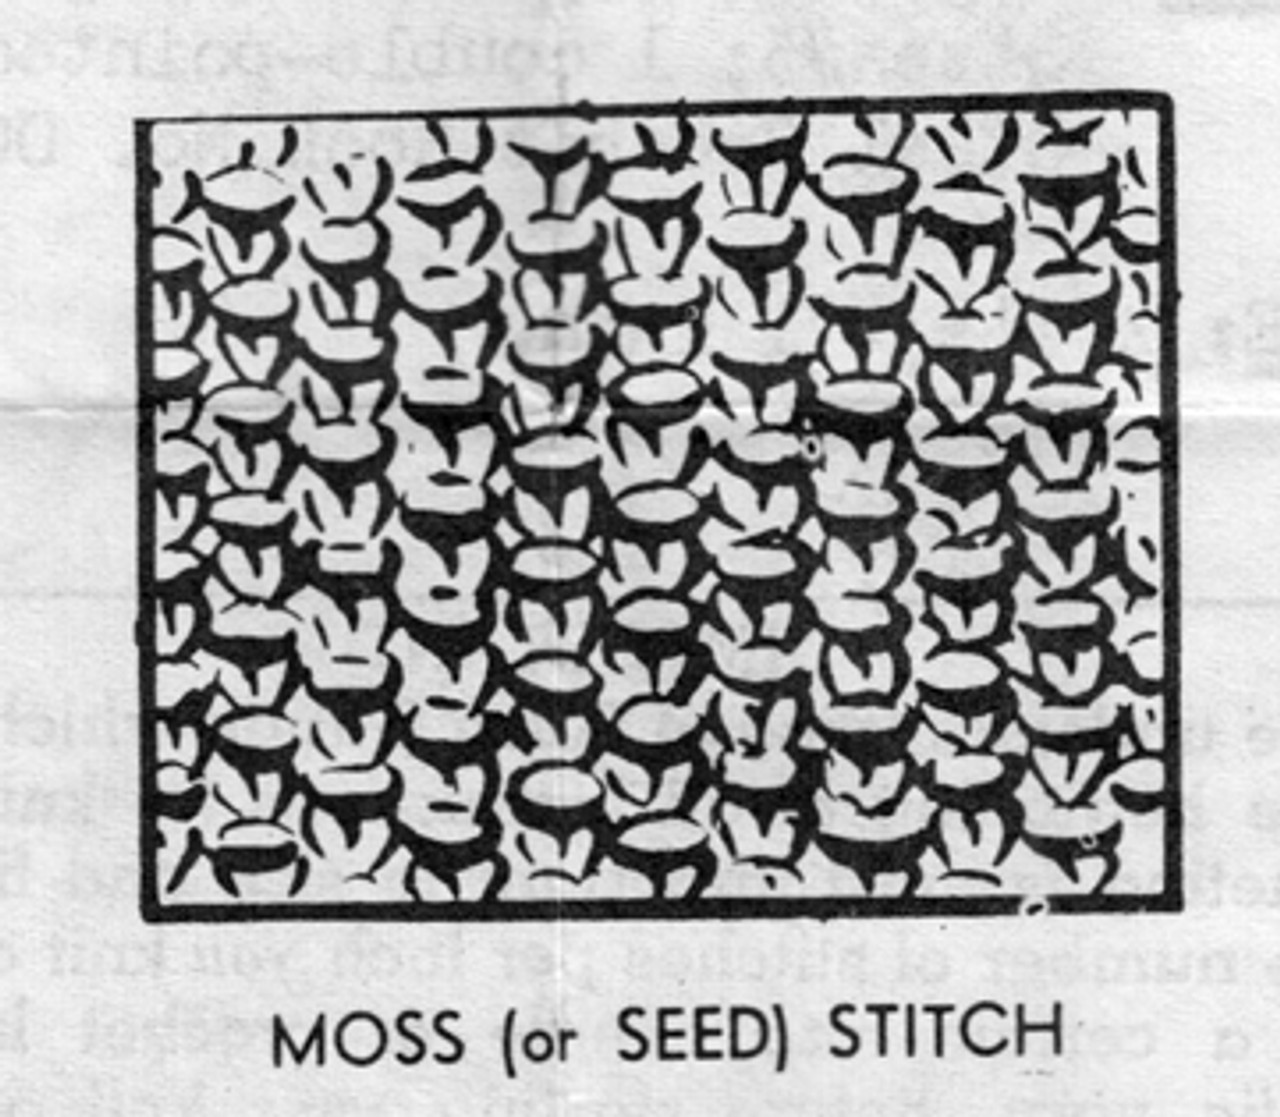 Moss Seed Stitch Knit Illustation